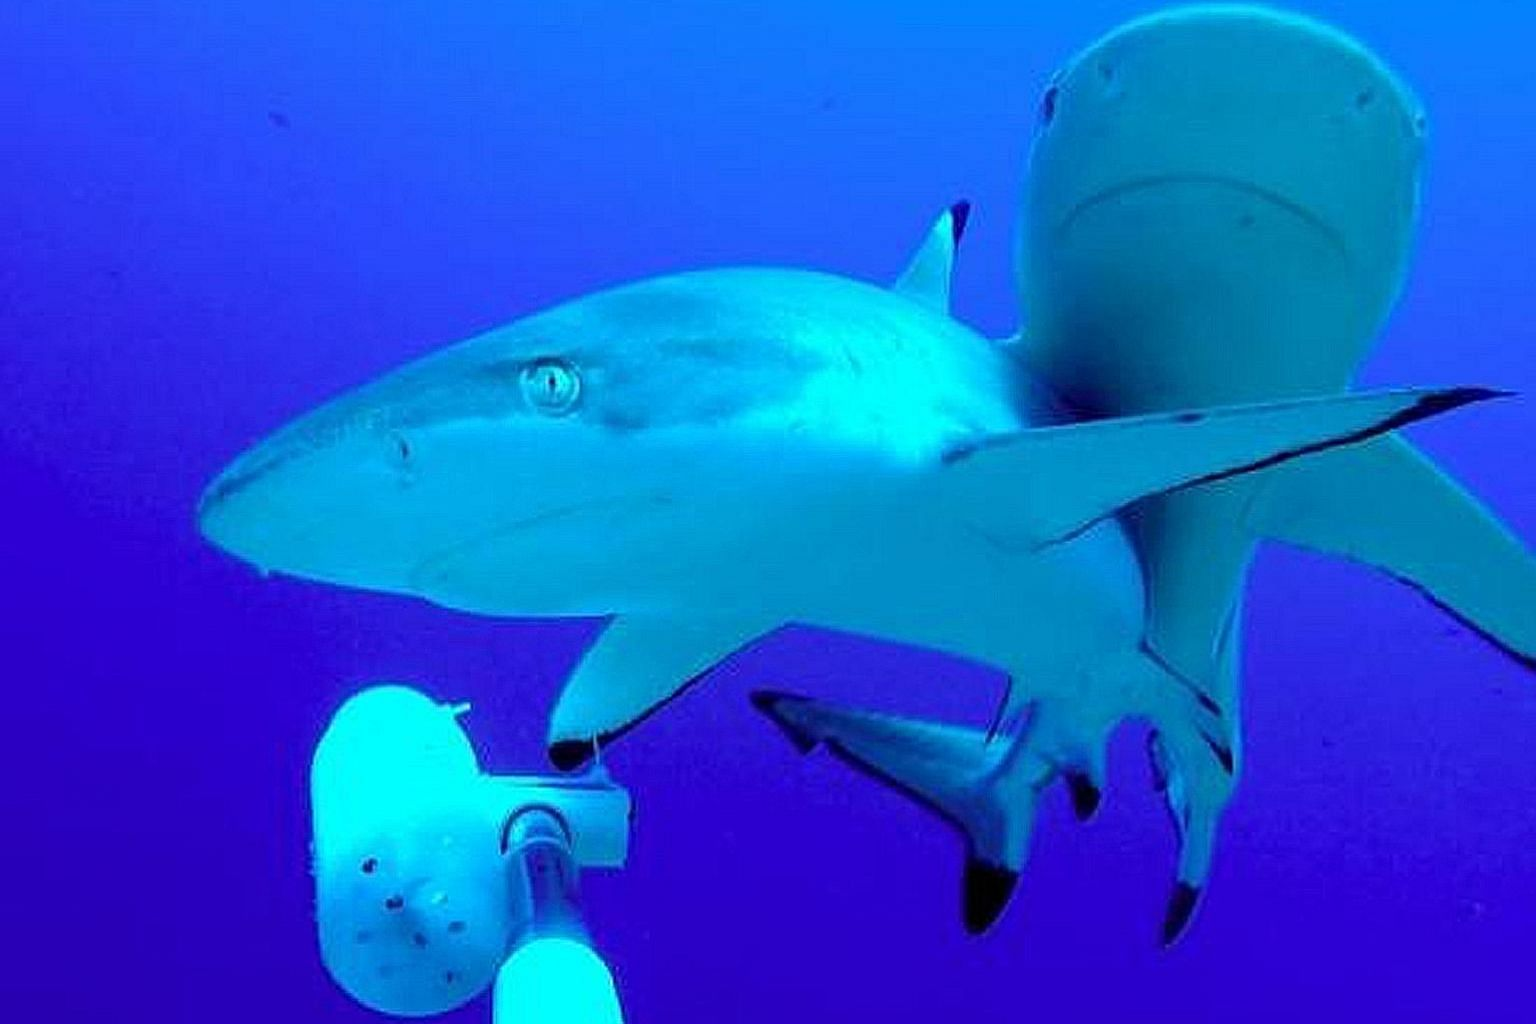 Researchers found that human interaction does not have any long-term behavioural impact on sharks.